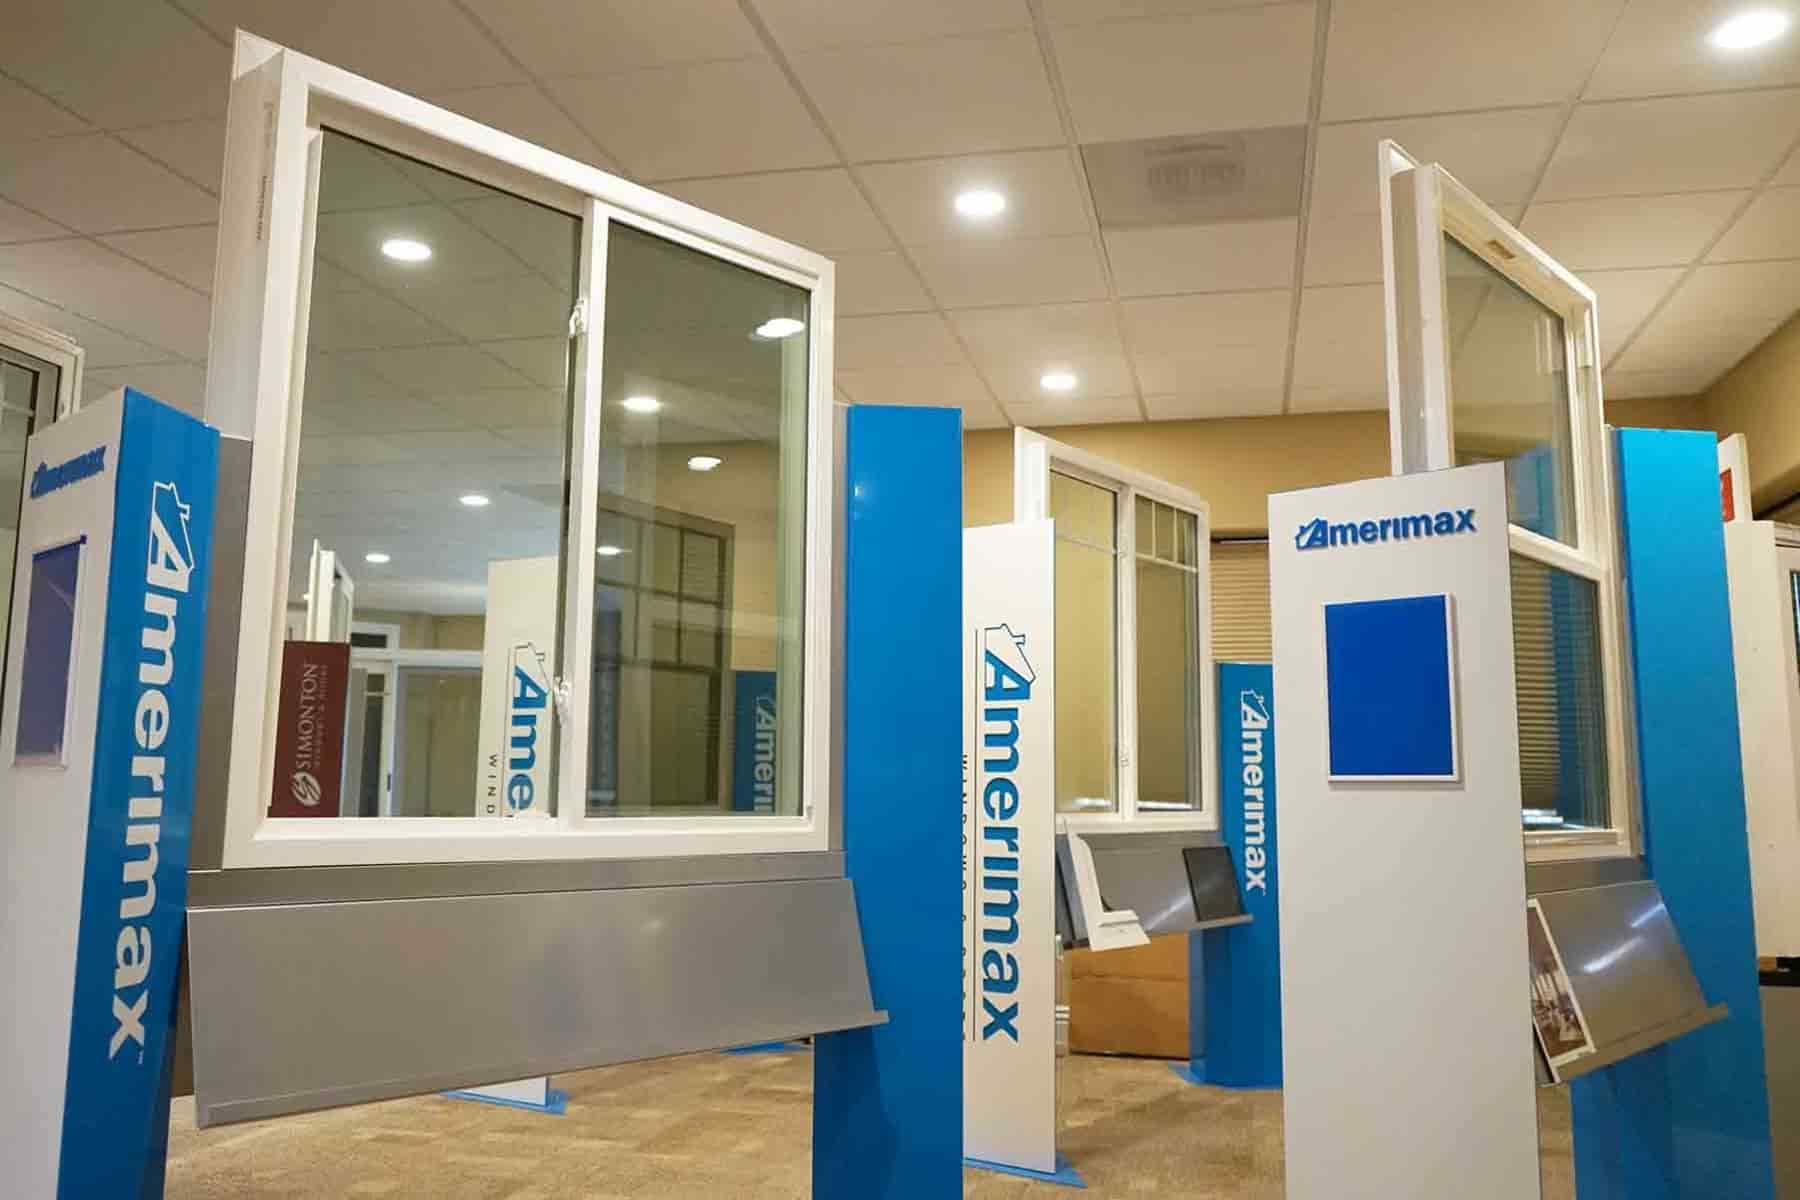 More of our amerimax windows for window installations